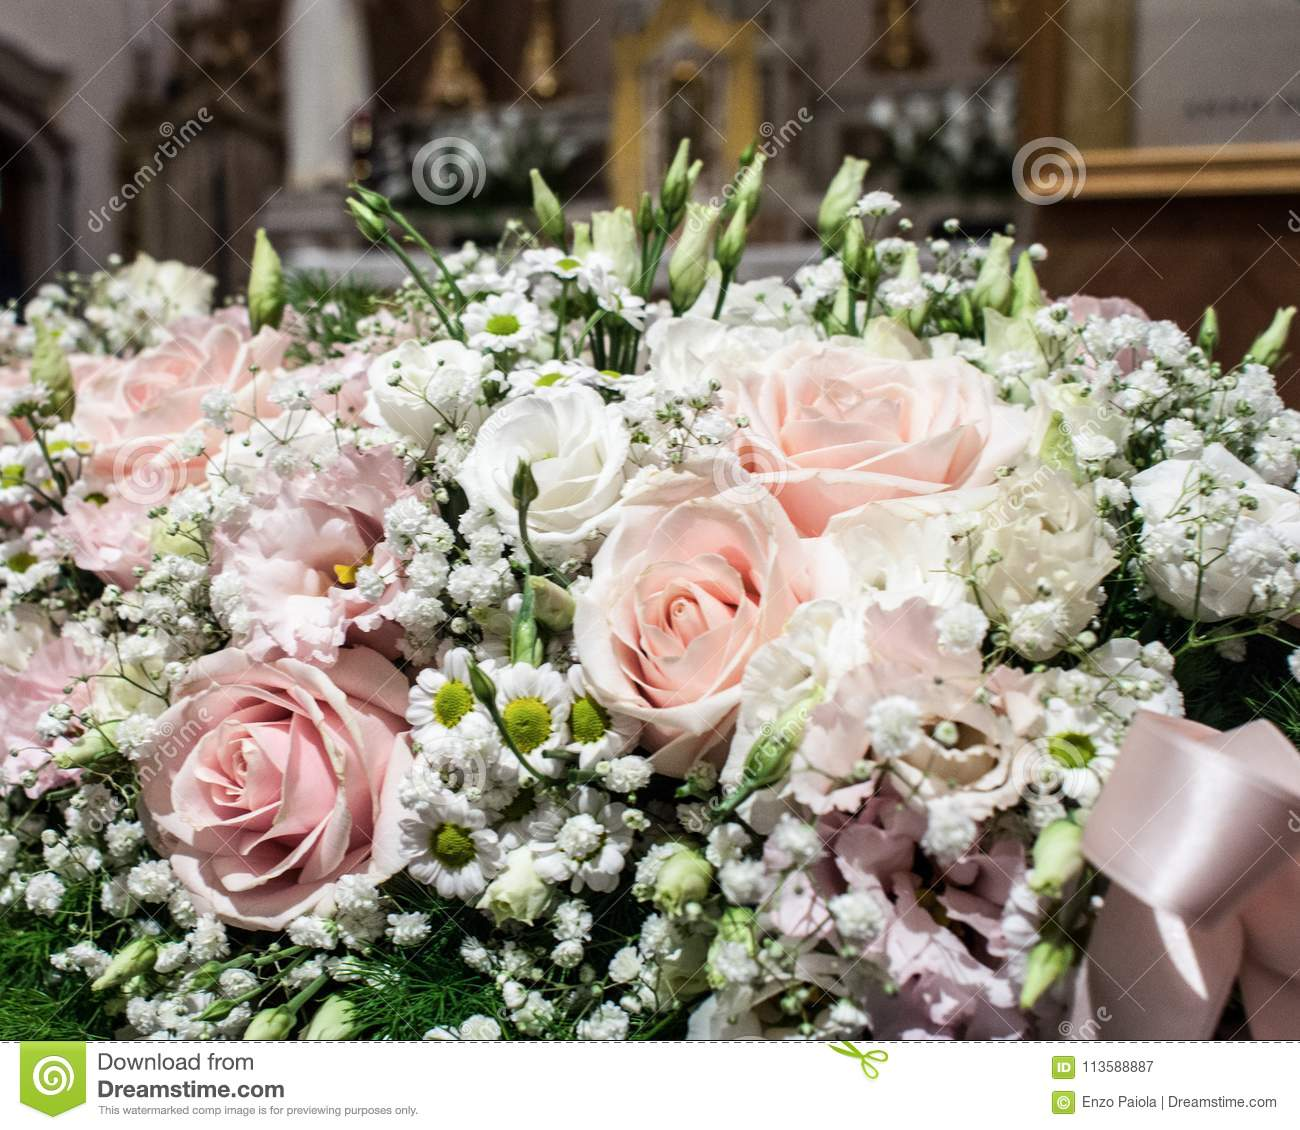 Floral Decorations At The Wedding Ceremony Stock Image